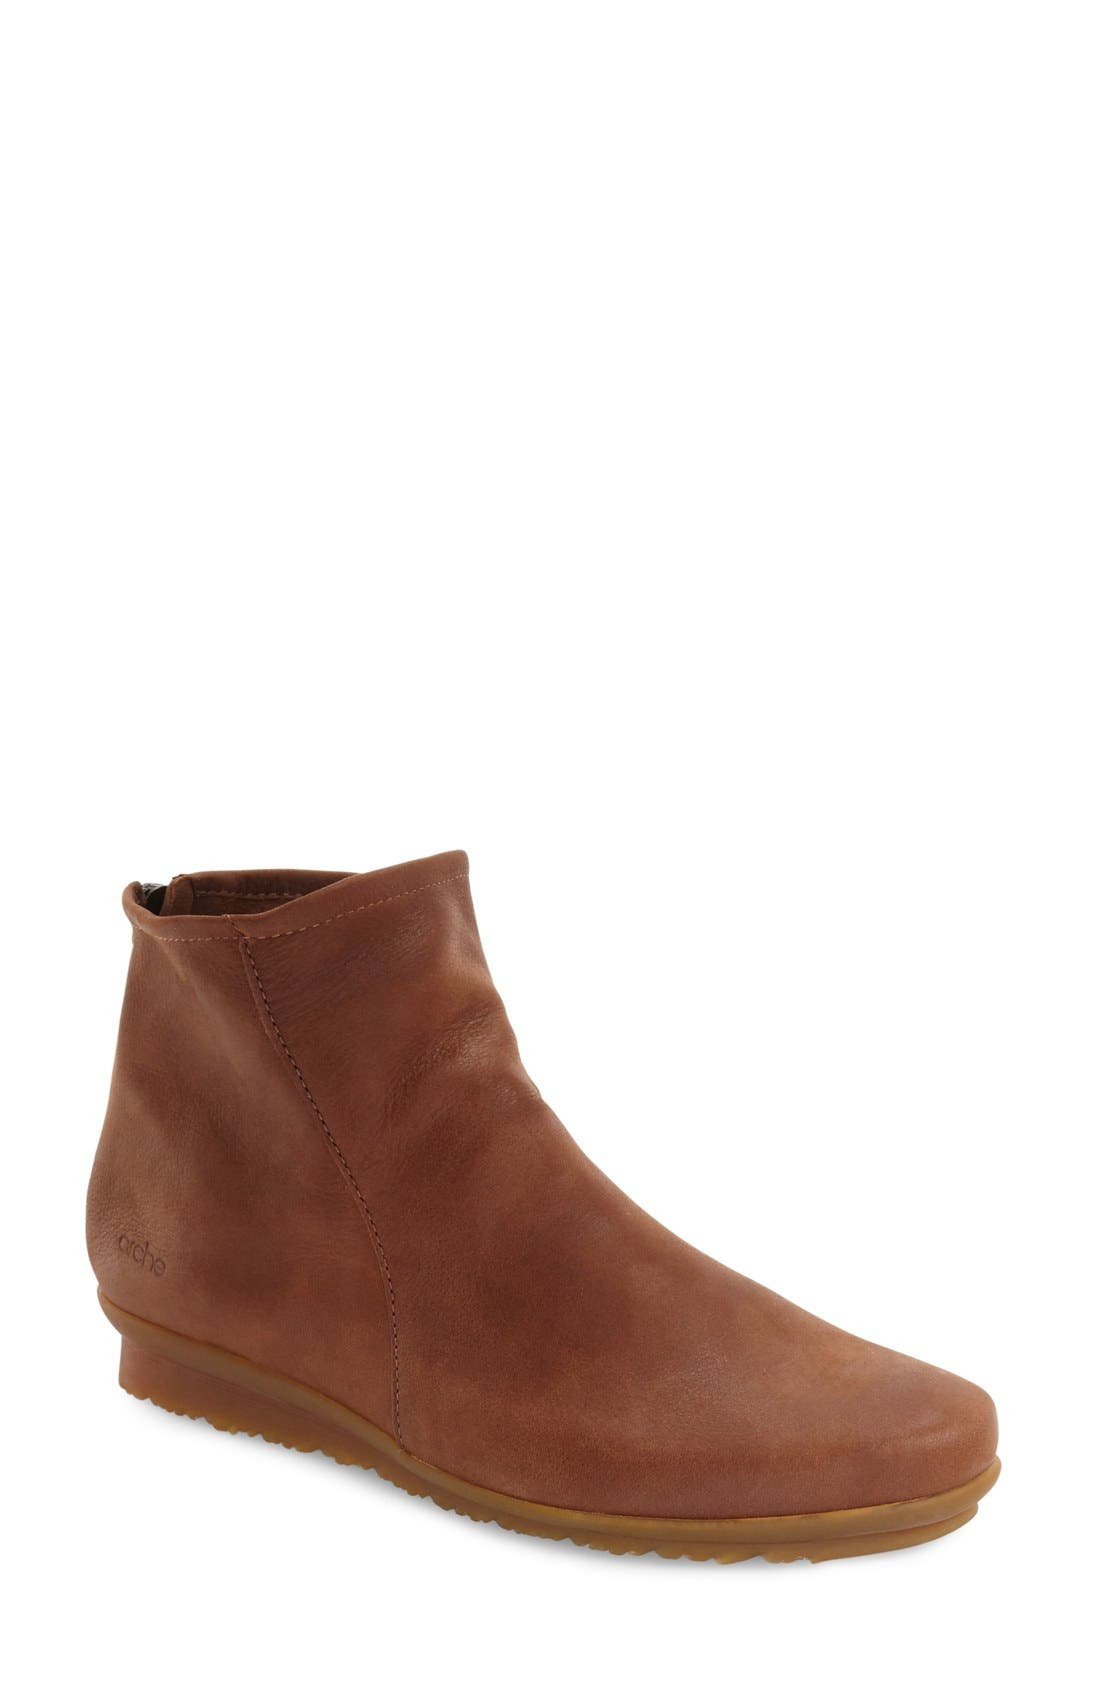 ARCHE 'Baryky' Boot in Hanava Leather